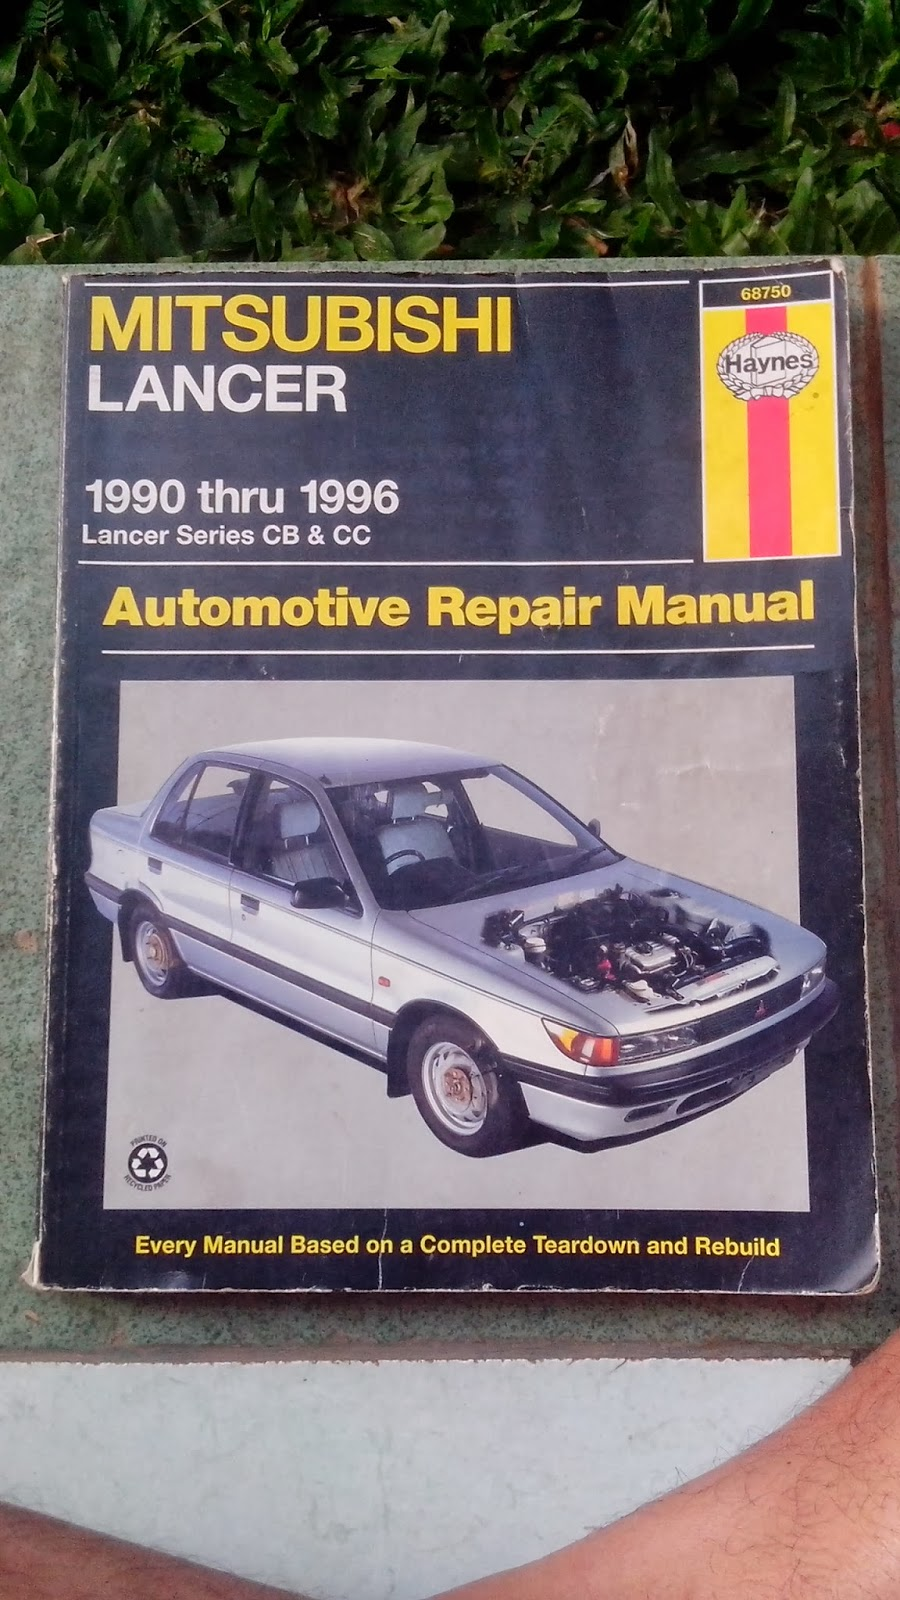 Mitsubishi Lancer 1991 Wiring Diagram Manual Guide Fuse Box Of Images Gallery